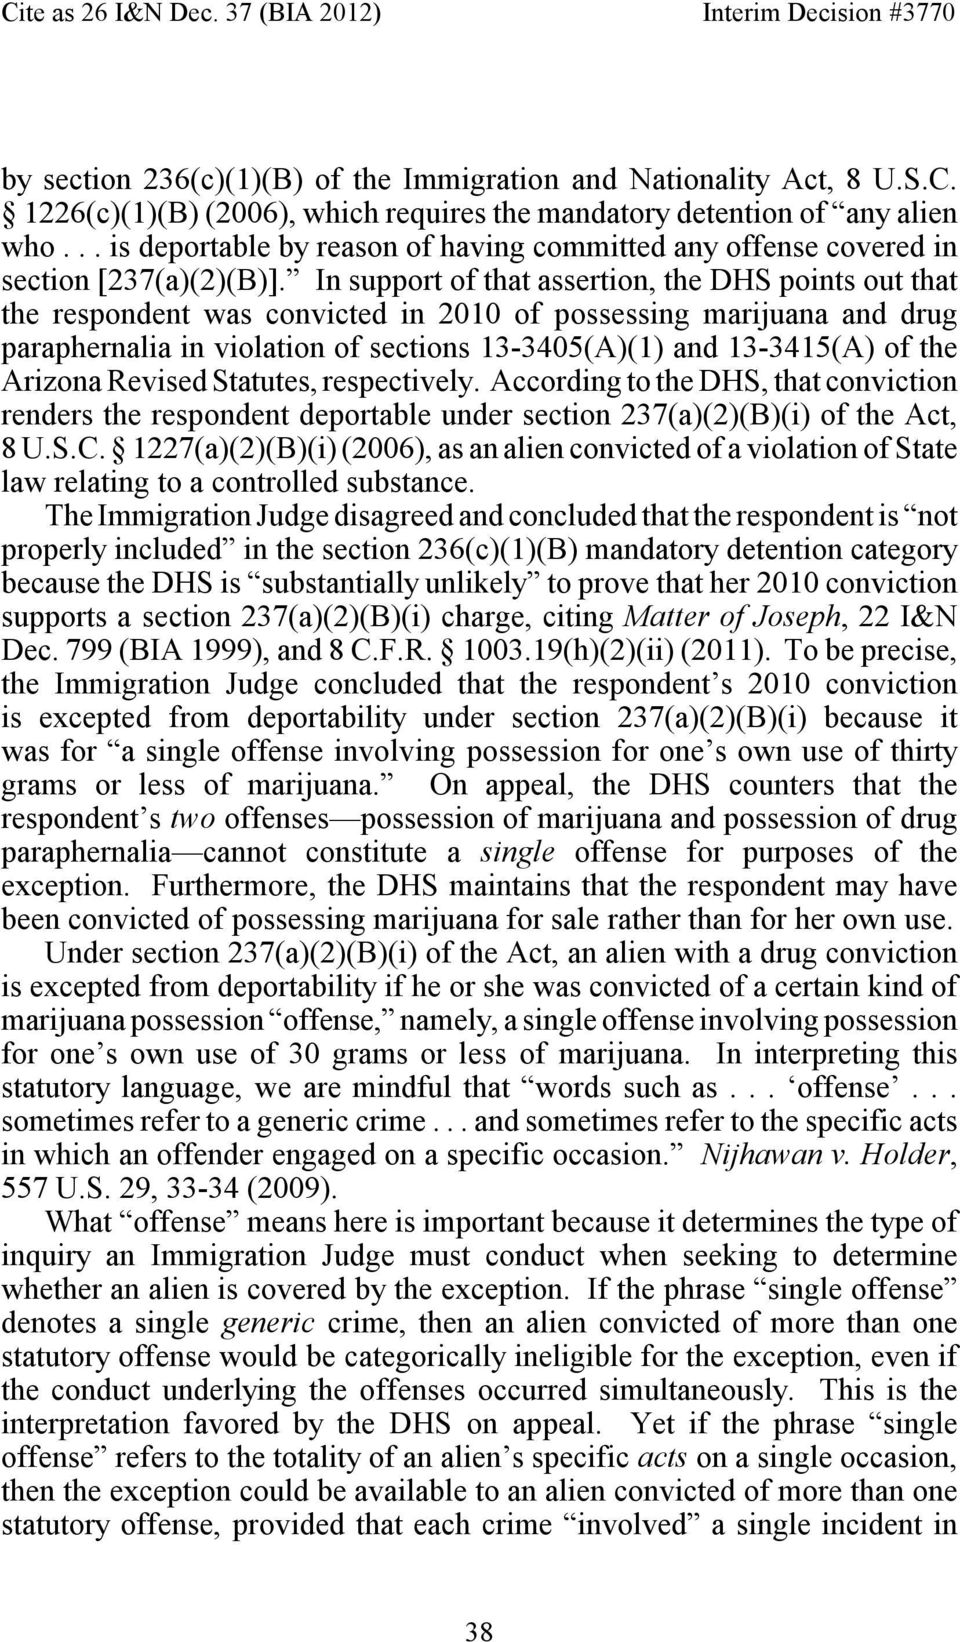 In support of that assertion, the DHS points out that the respondent was convicted in 2010 of possessing marijuana and drug paraphernalia in violation of sections 13-3405(A)(1) and 13-3415(A) of the